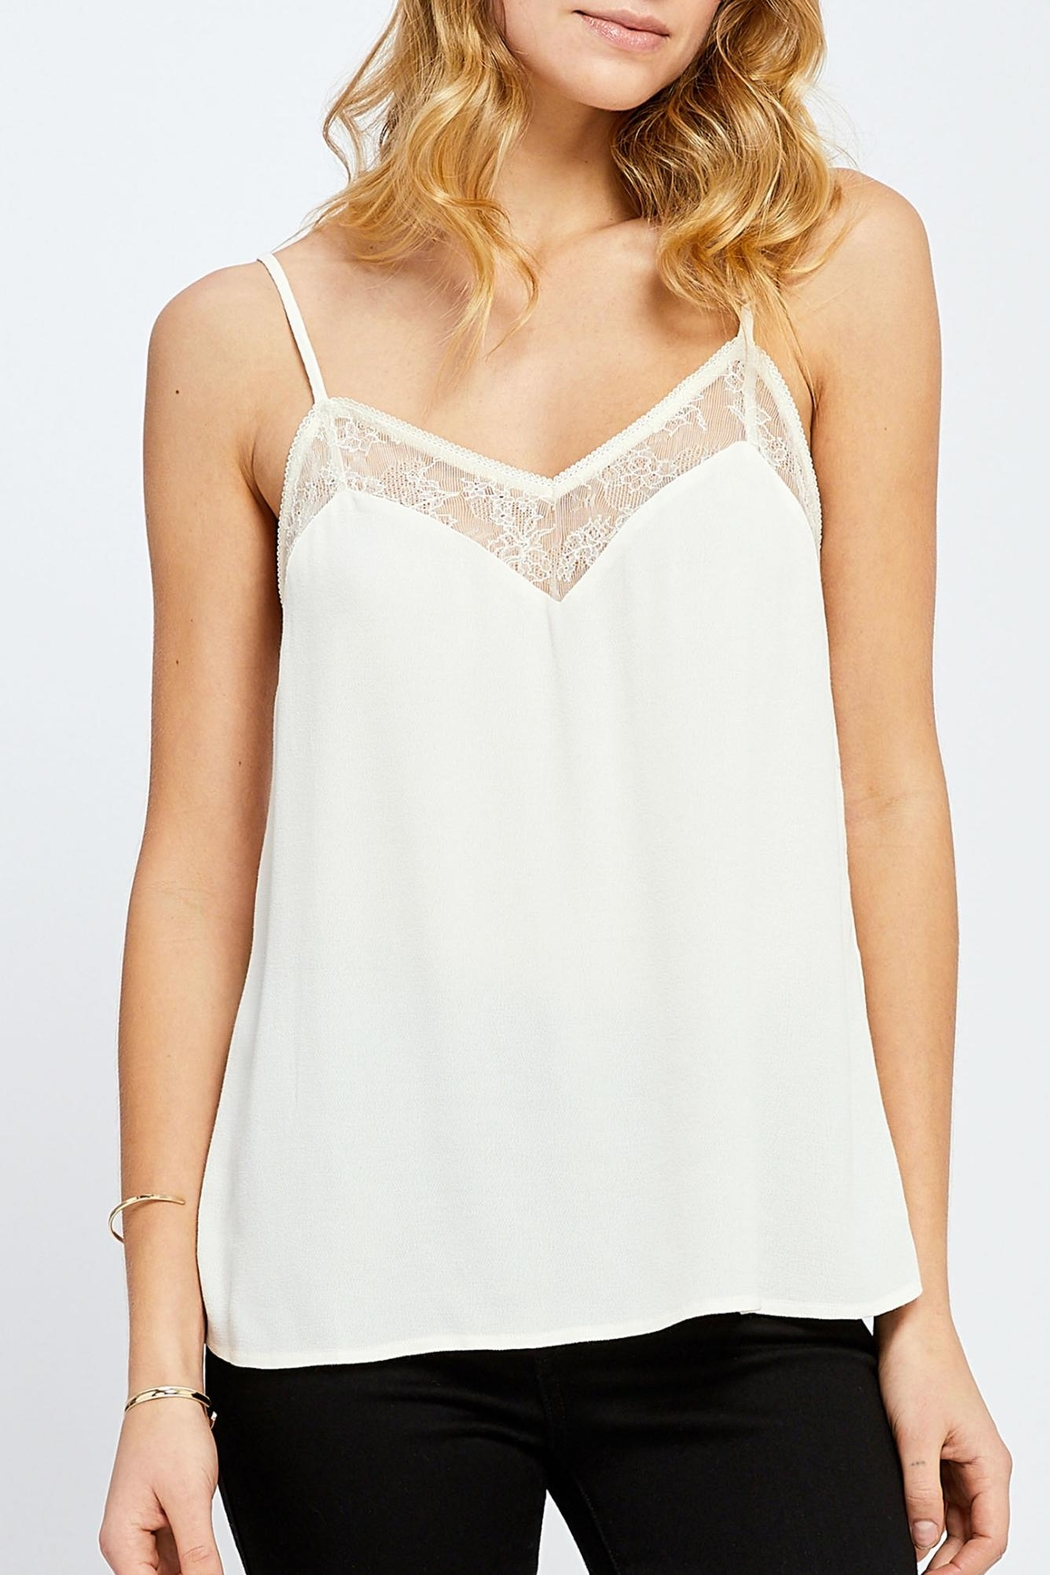 97788f2a9983 Gentle Fawn Cream Lace Camisole from Ontario by Steel Style Garage ...